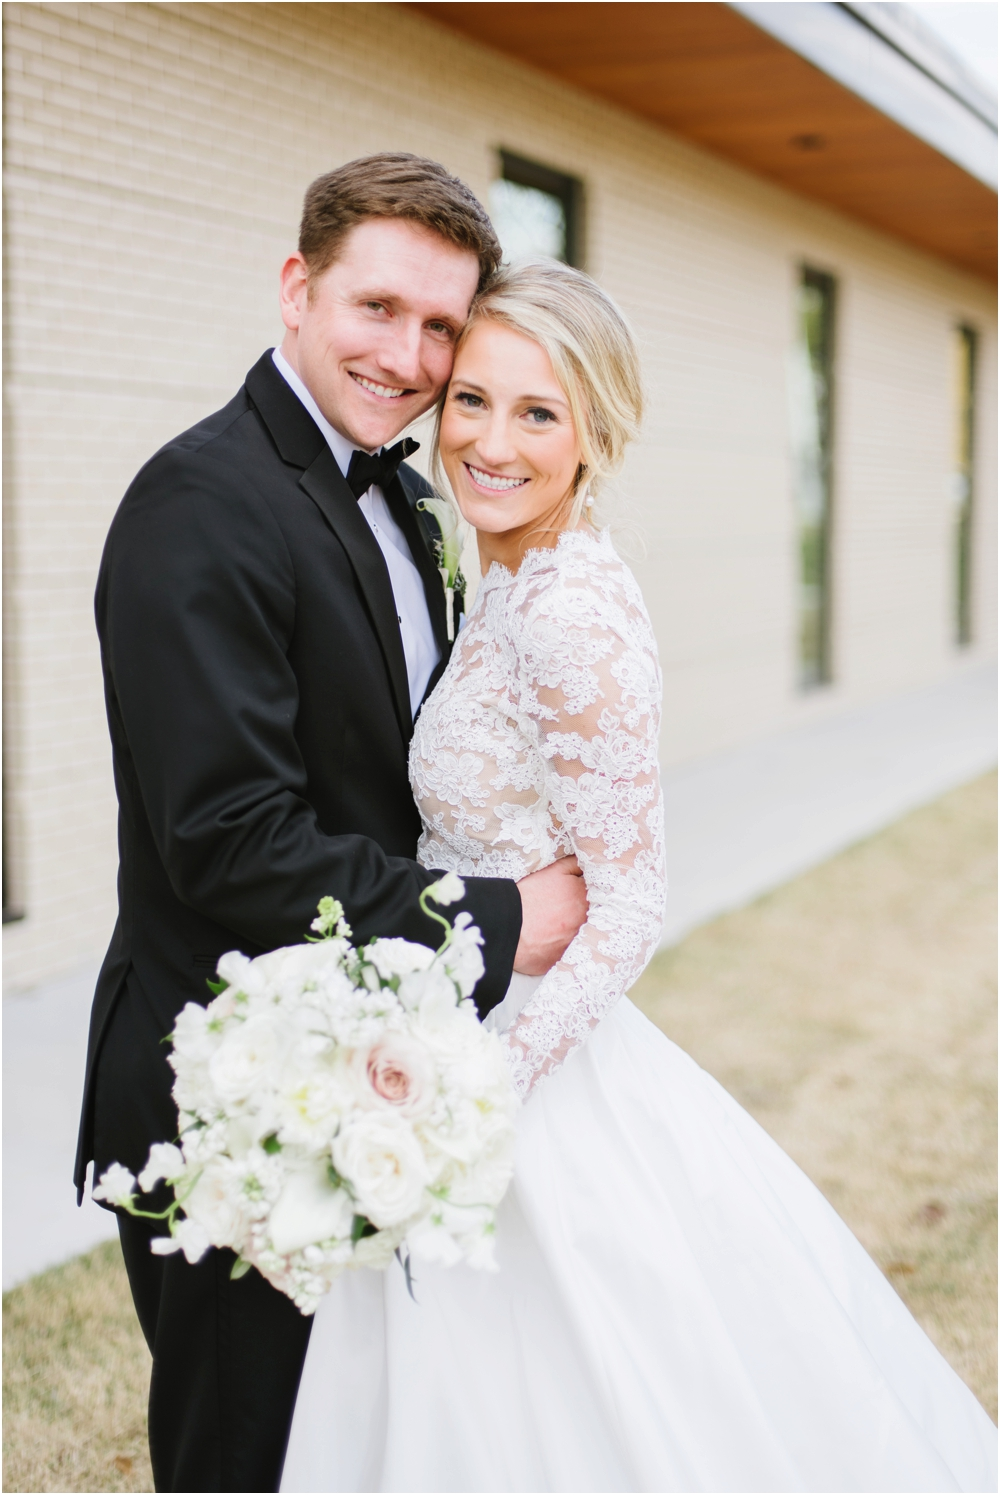 dallasweddingphotographer_texasweddingphotographer_texasweddingphotographers_dallasweddingphotographer_mattandjulieweddings_0648.jpg